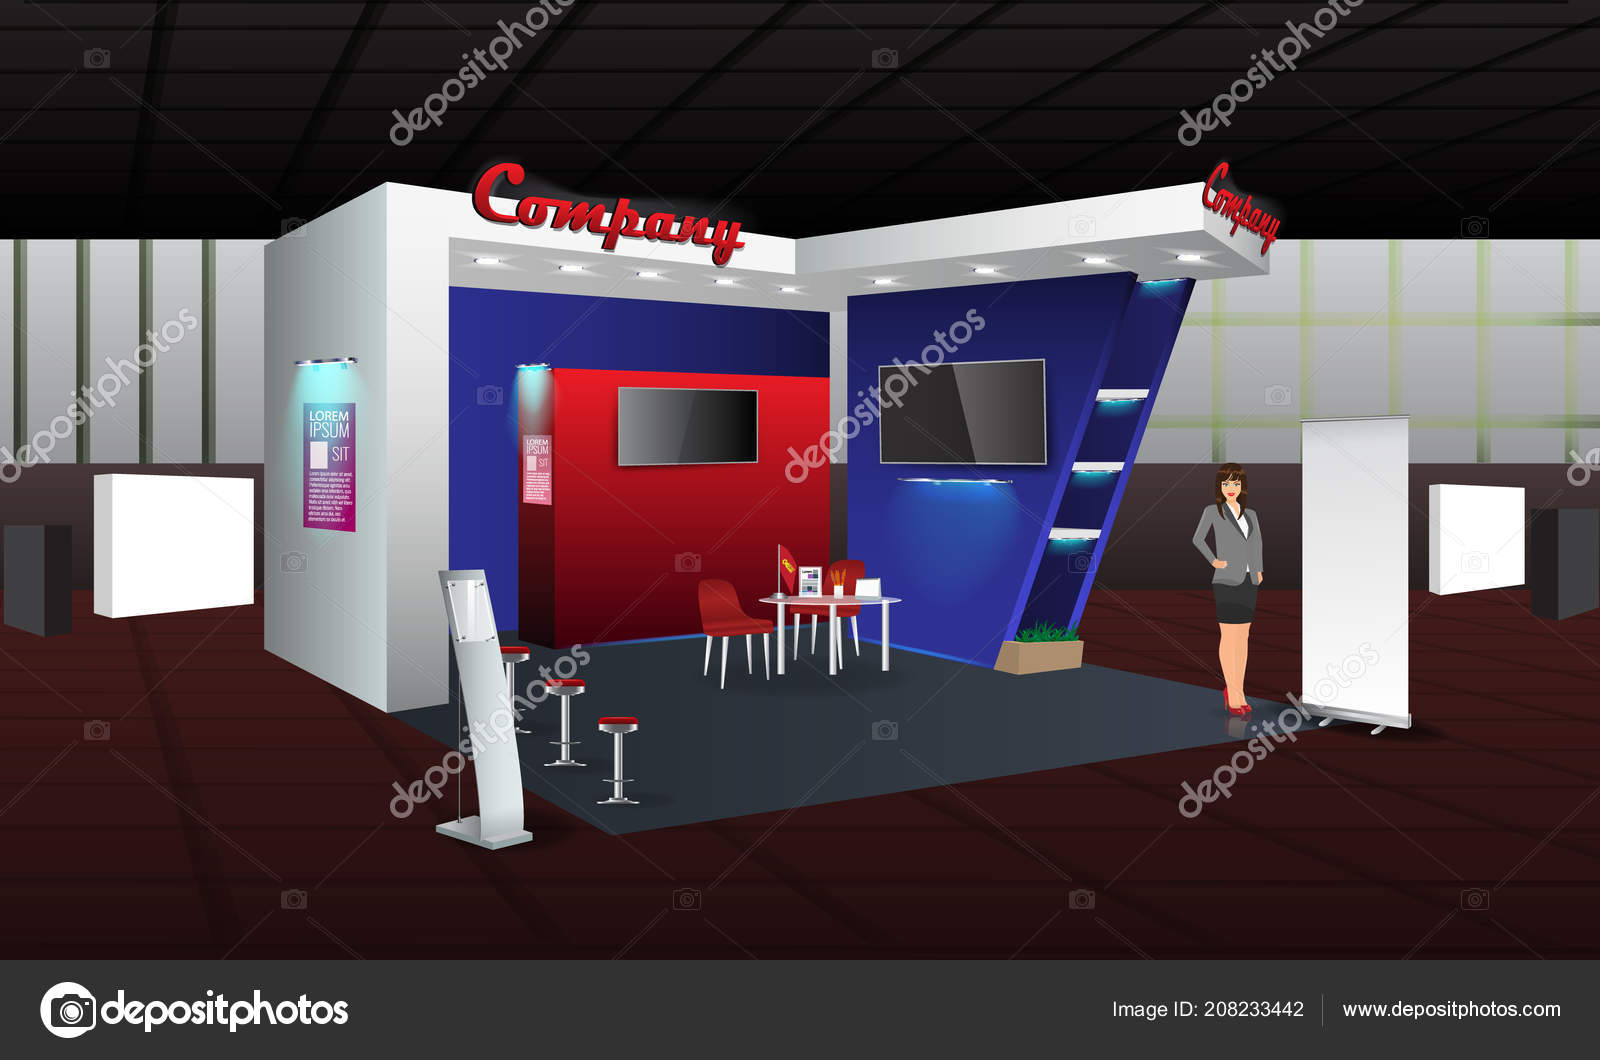 Trade Exhibition Stand Vector : Exhibition stand display design with info board roll up vector